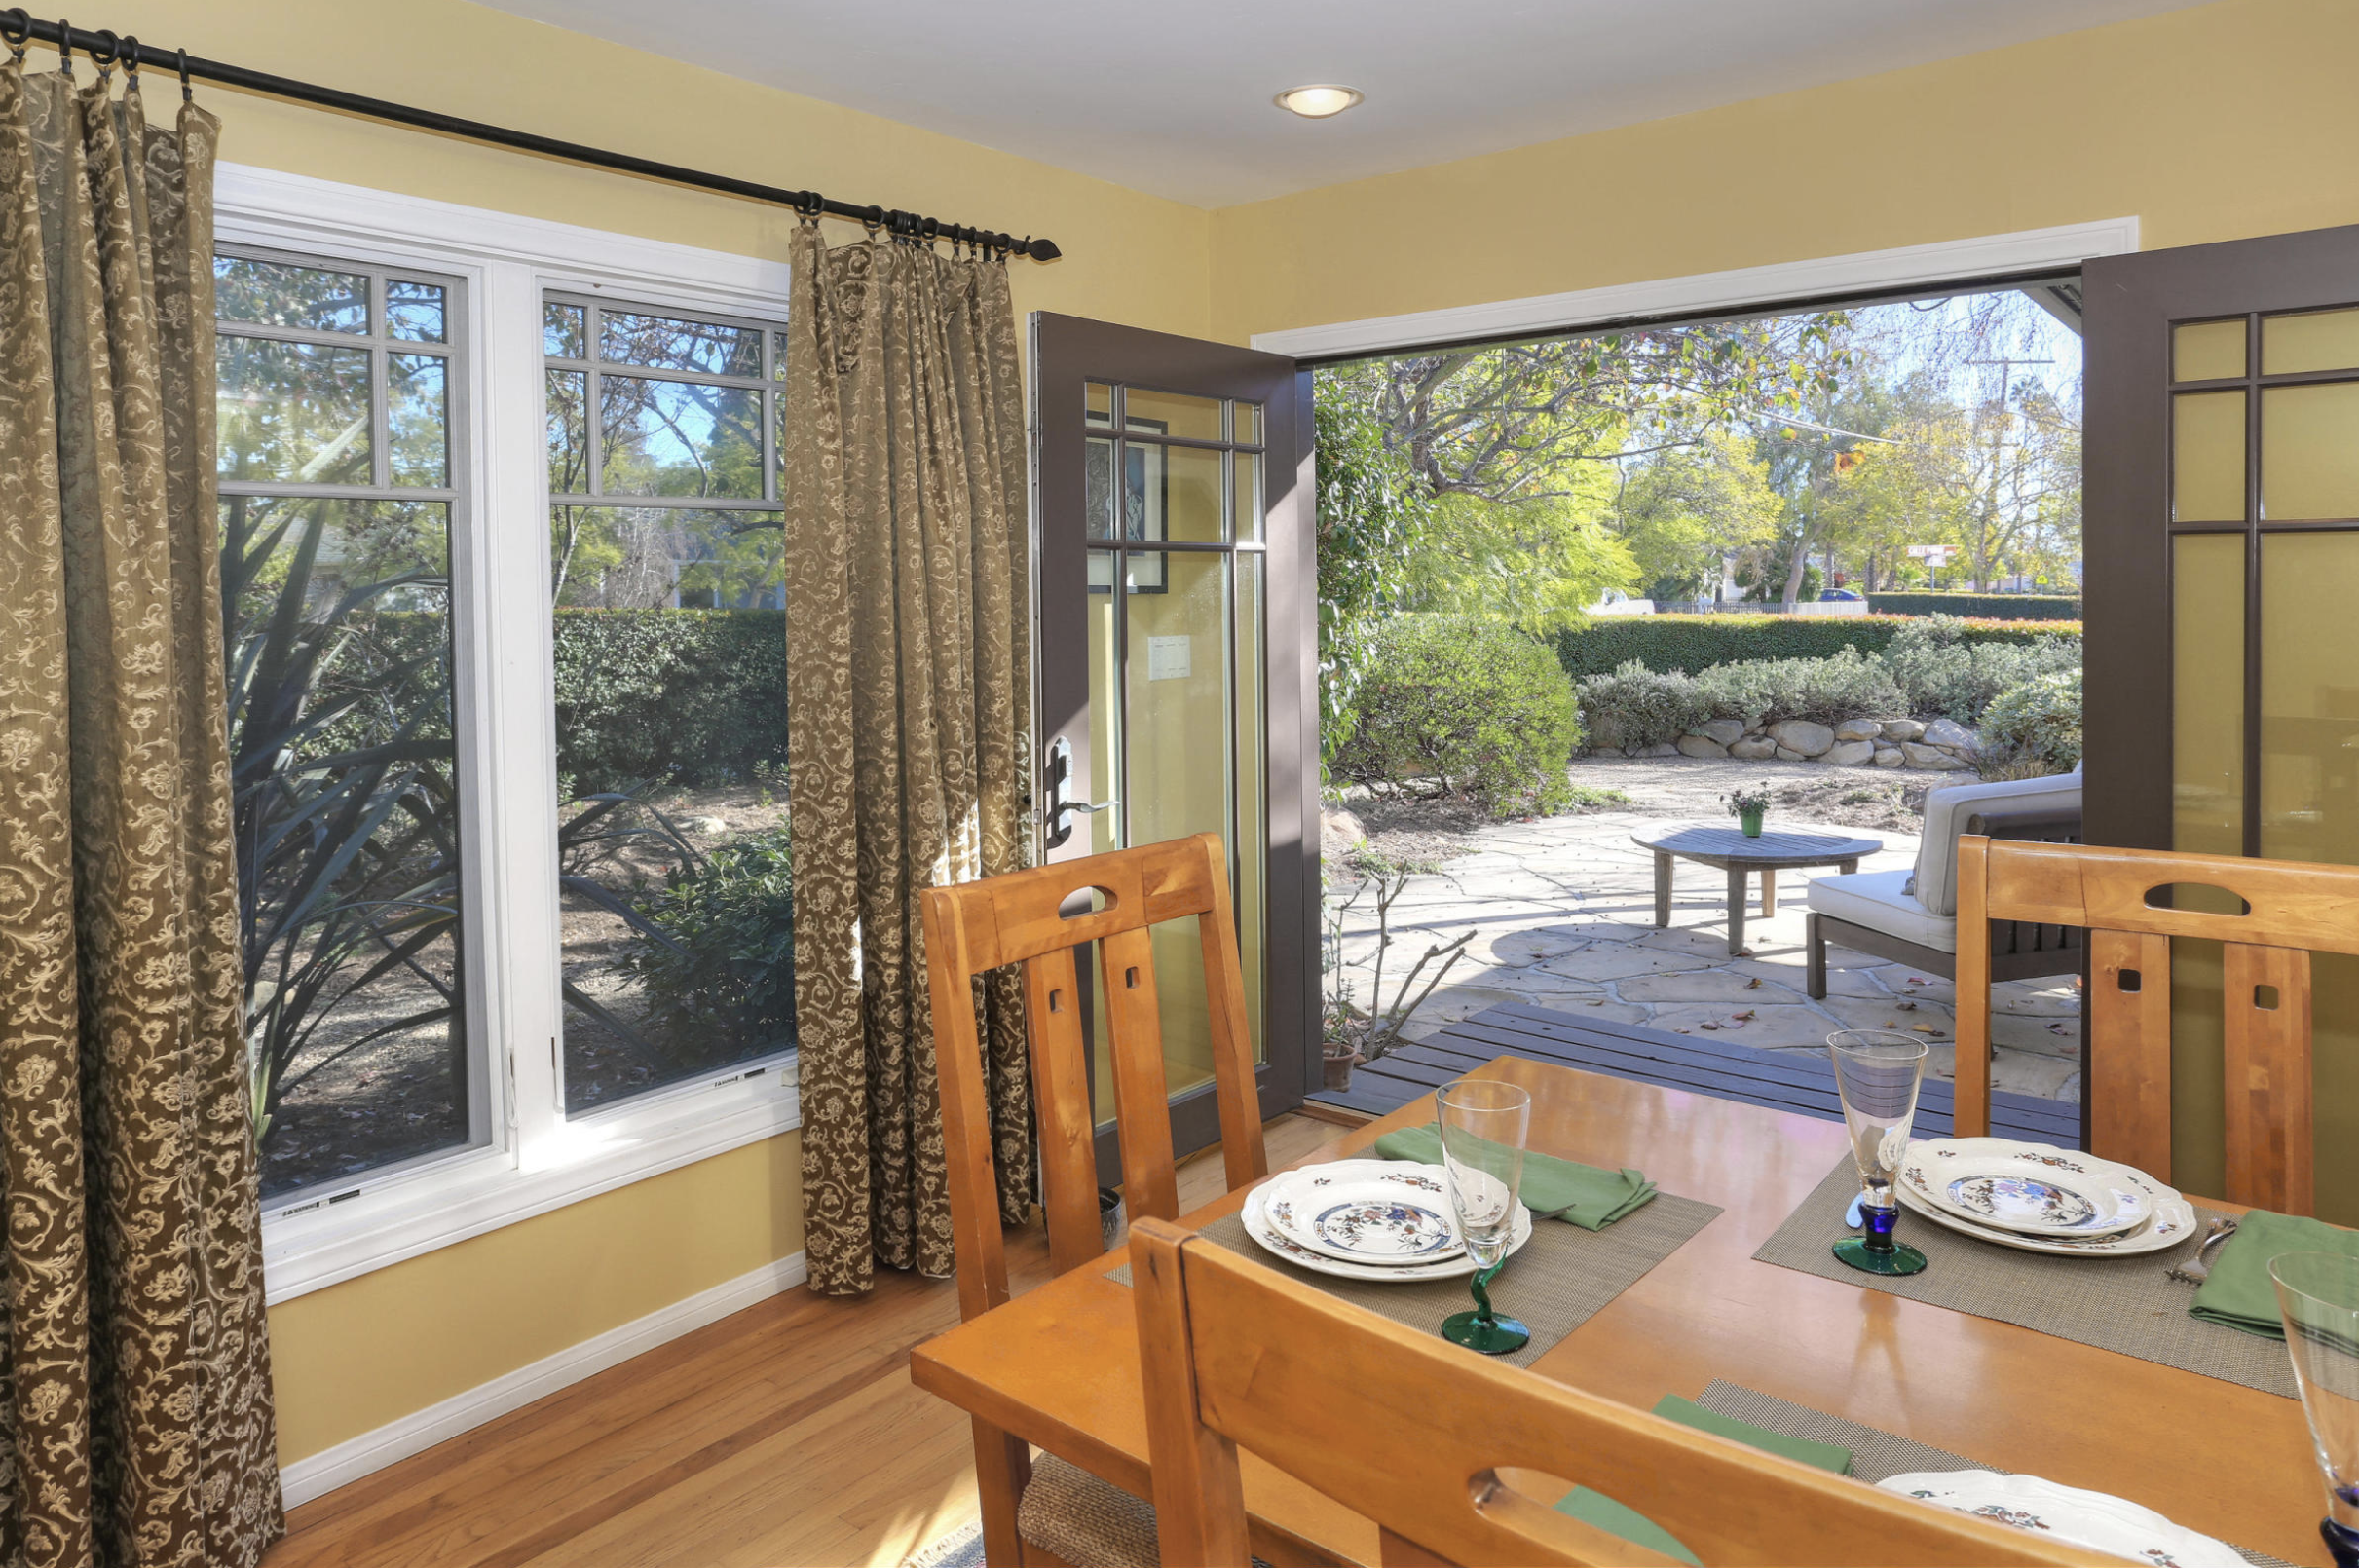 Dining and Entrance to Back Yard